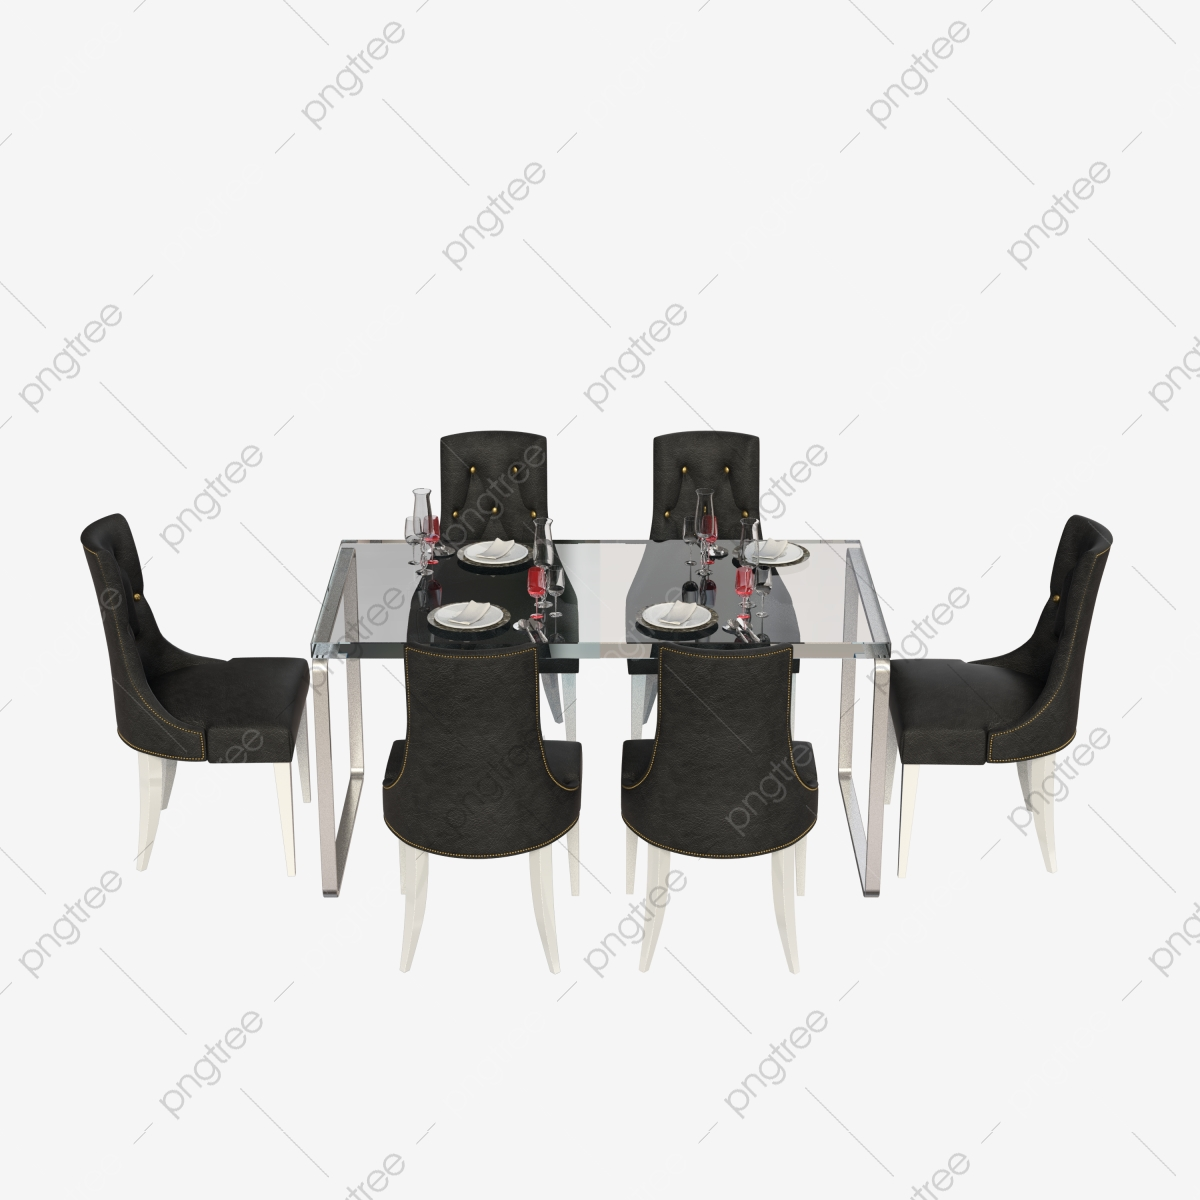 A Set Of Restaurant Tables And Chairs Tables And Chairs